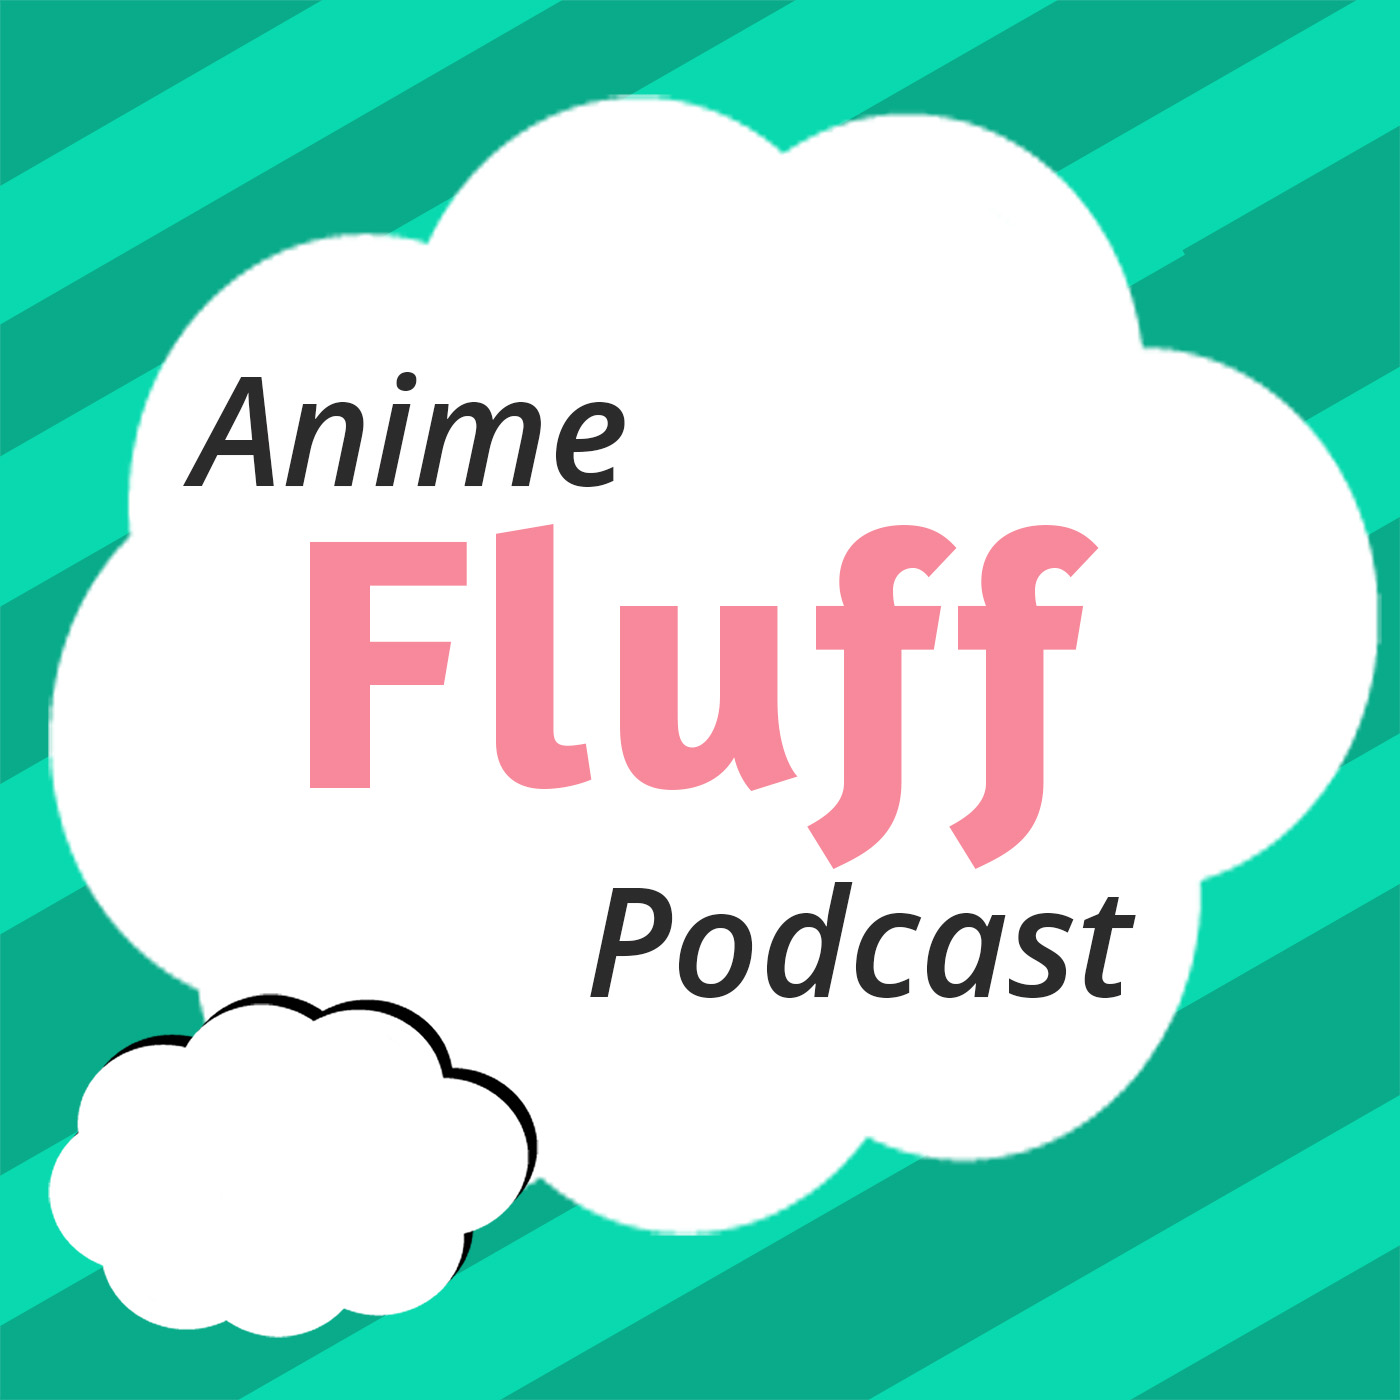 Anime Fluff Podcast